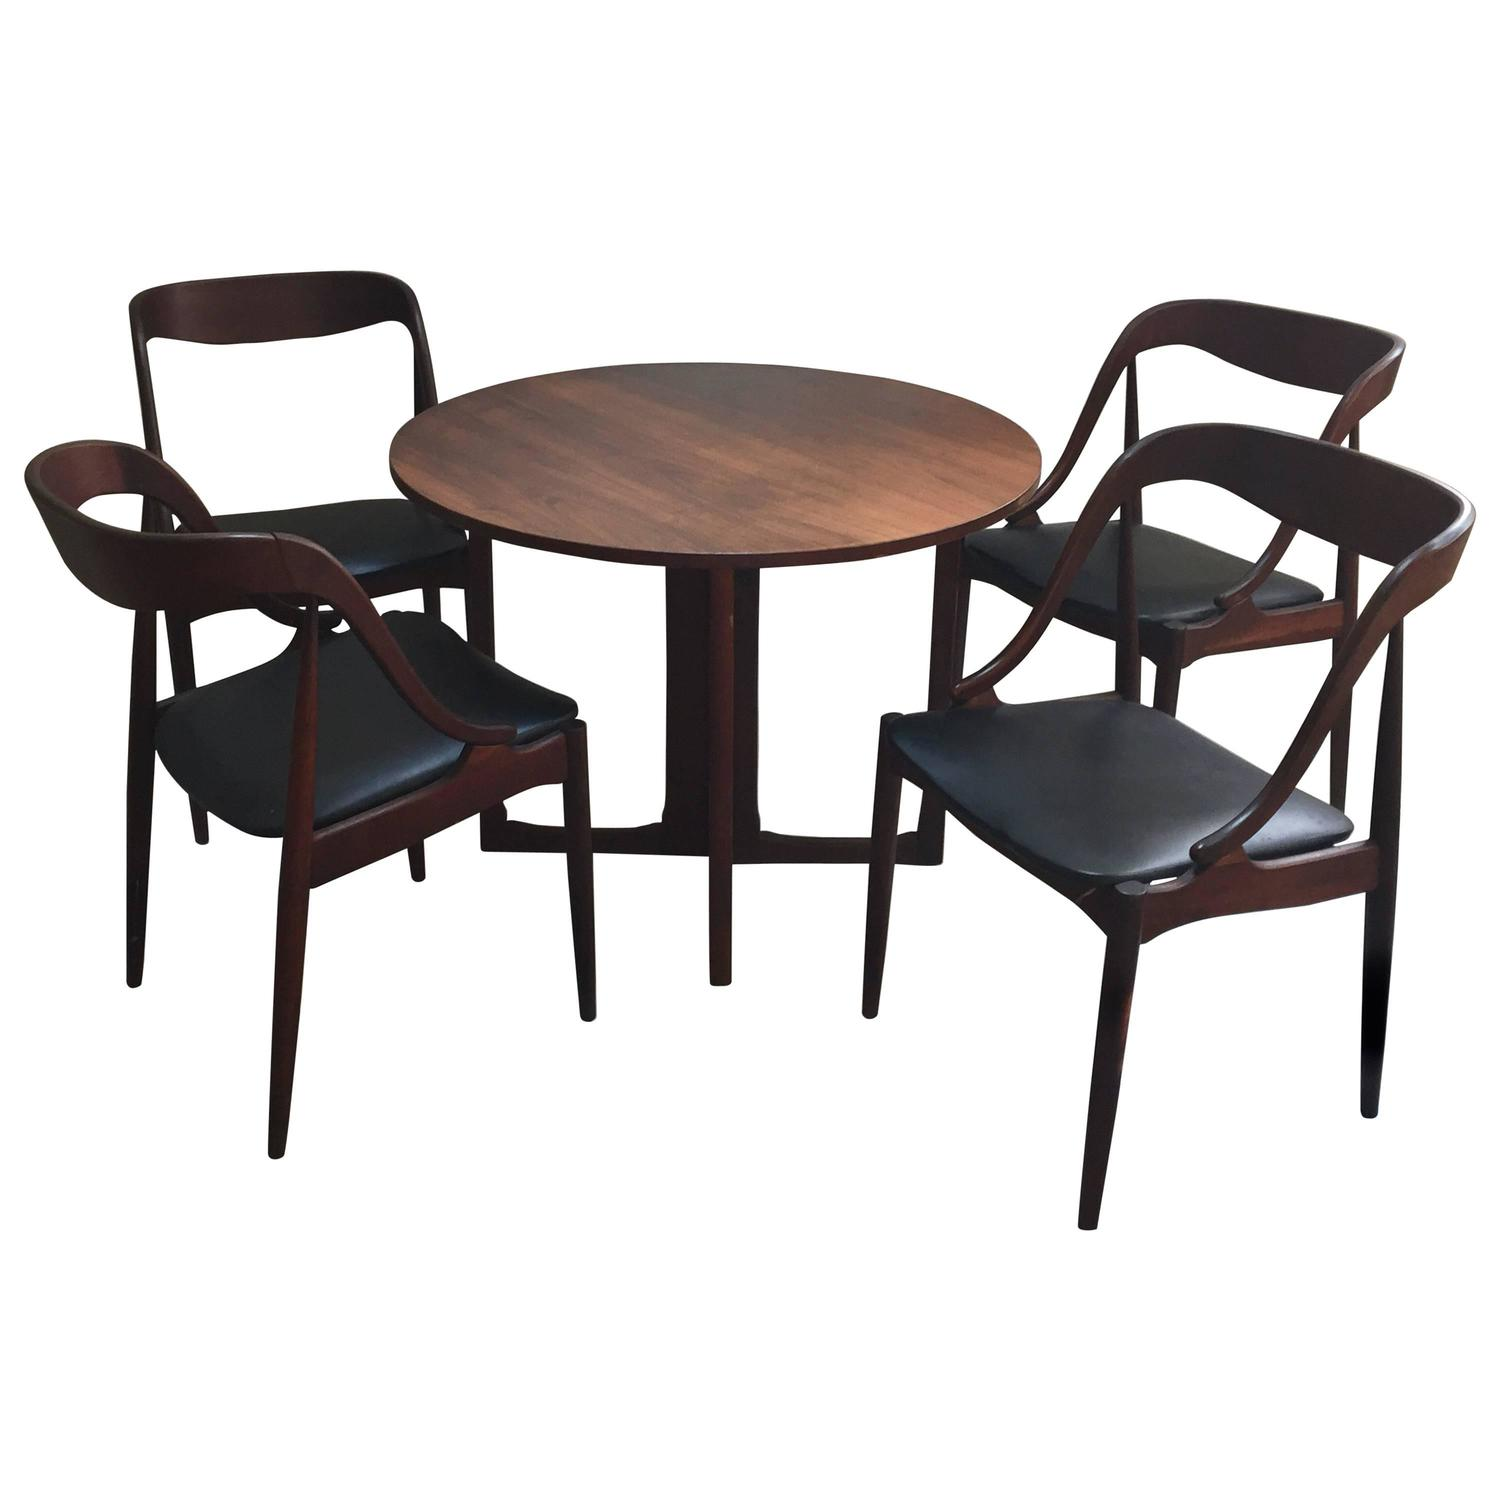 Tables And Chairs For Sale: Danish Modern Game Table And Four Chairs, 1960s For Sale